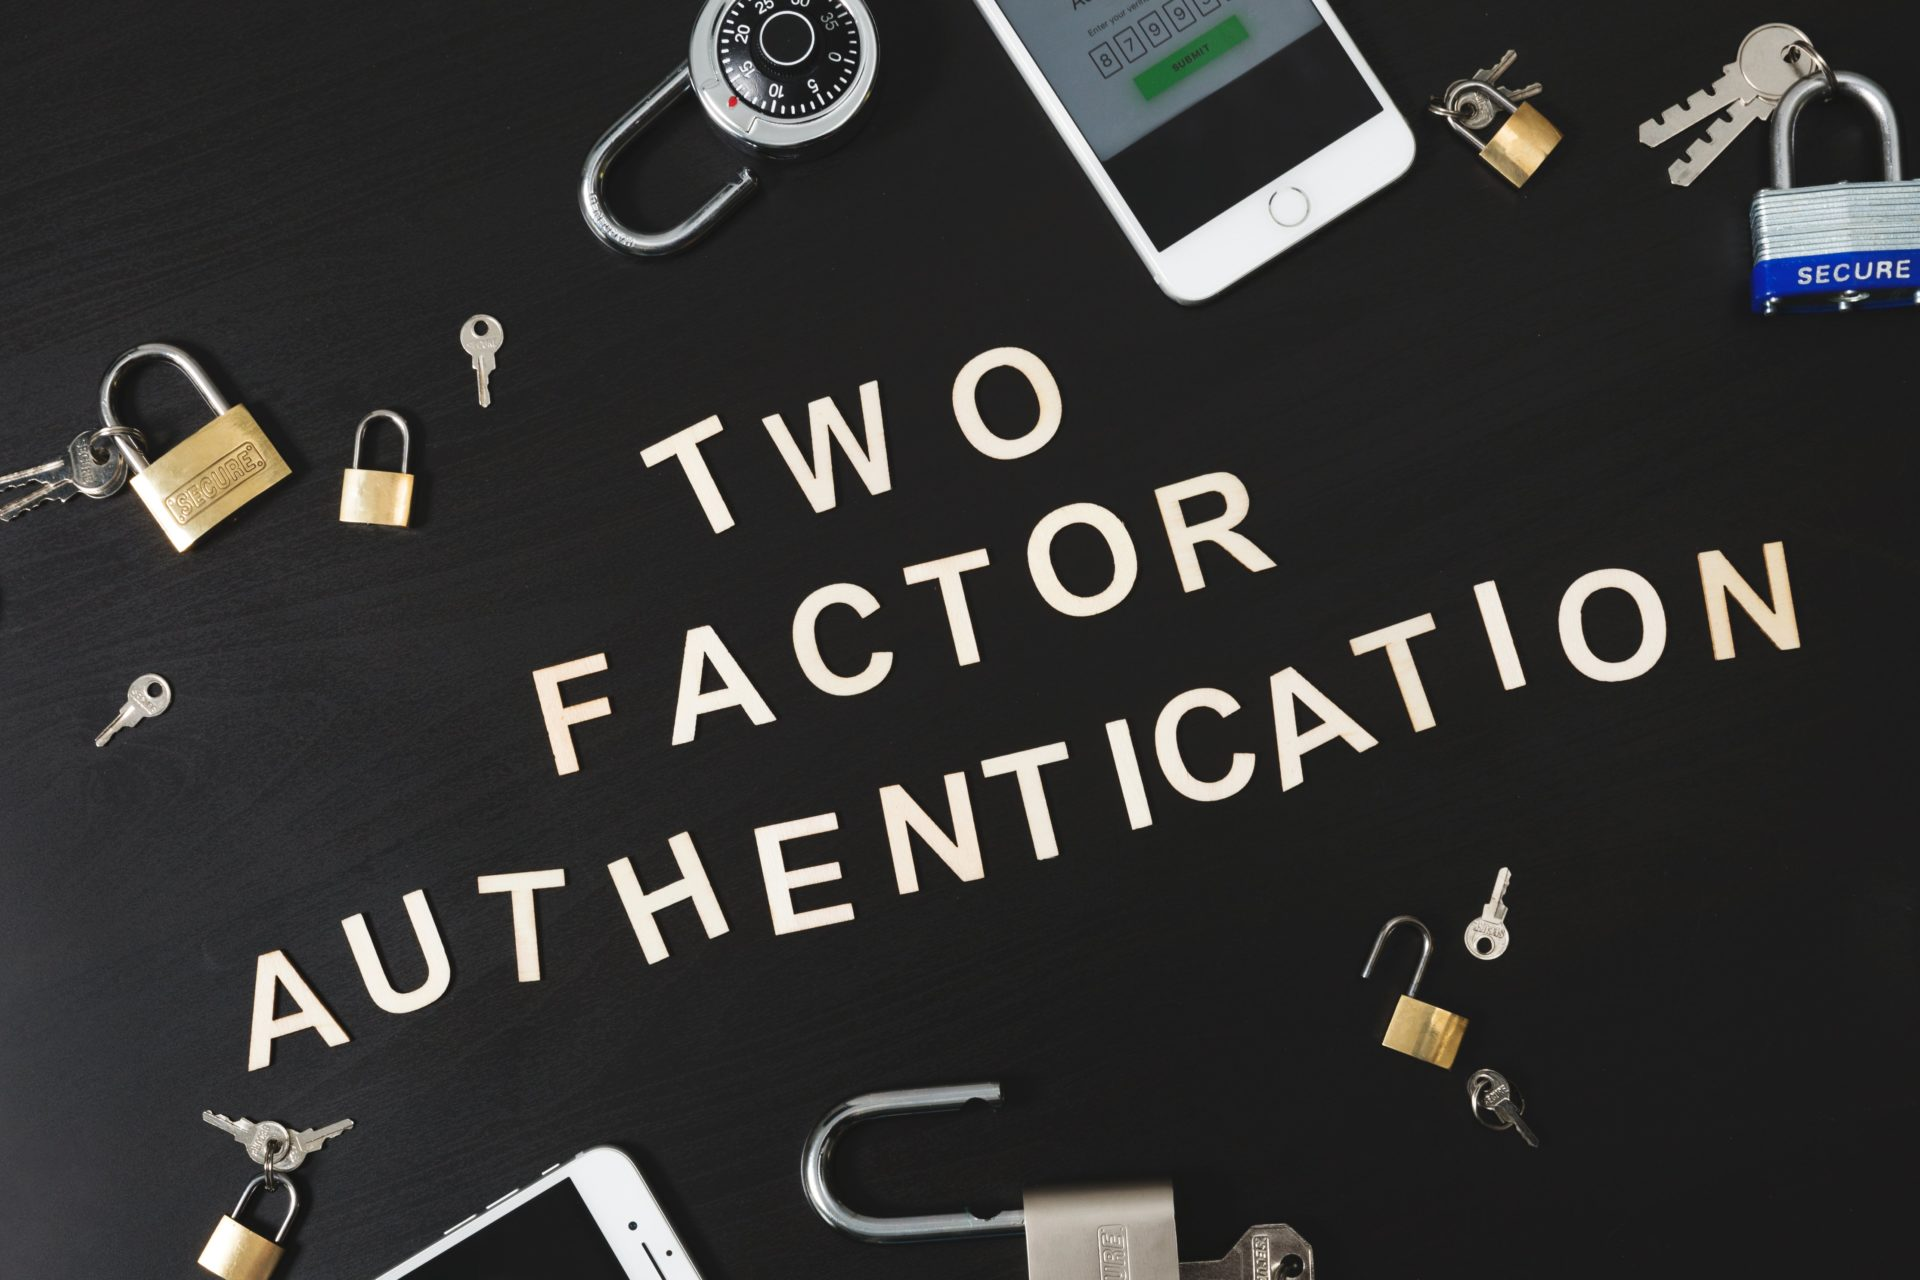 Why is SMS 2-factor authentication not as secure as app-based 2FA?